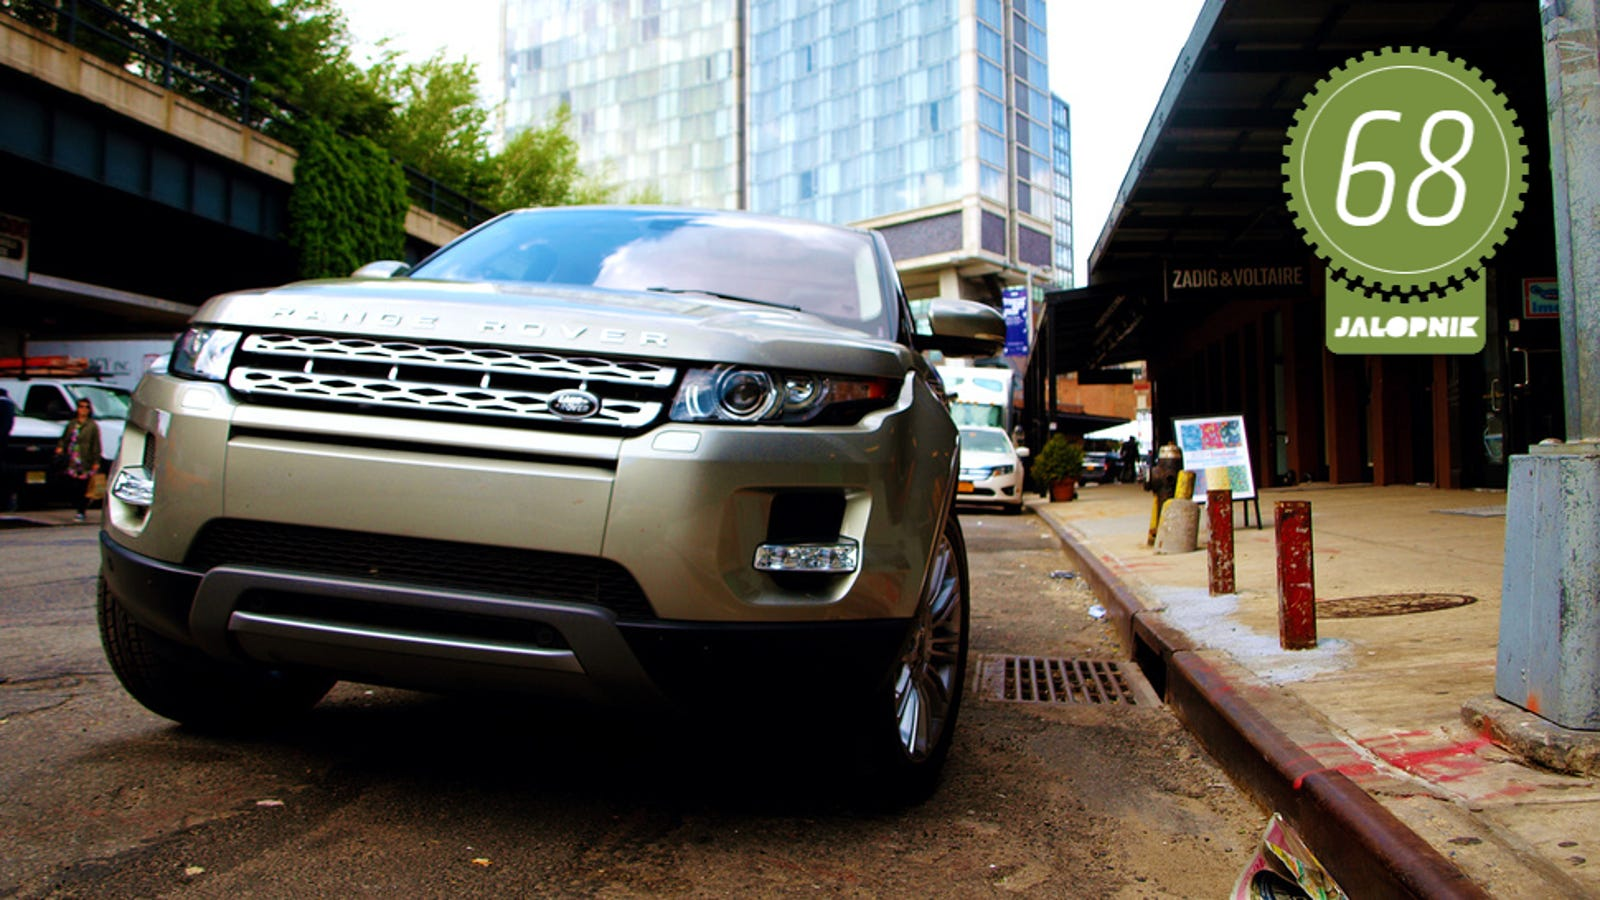 2013 range rover evoque the jalopnik review. Black Bedroom Furniture Sets. Home Design Ideas